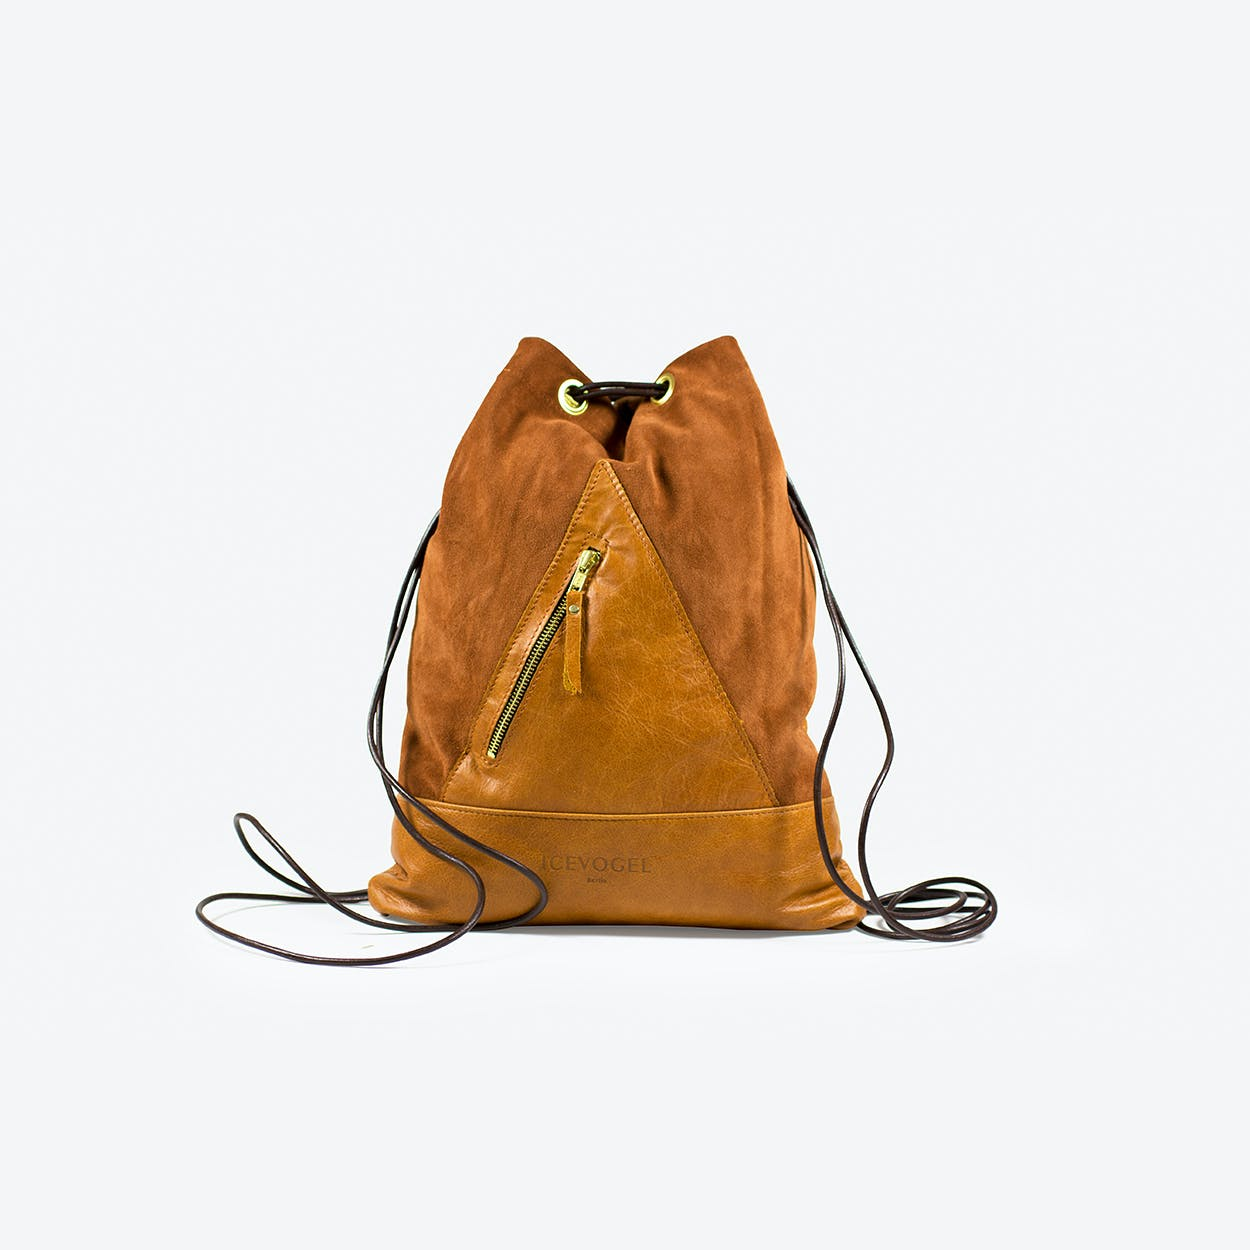 Backpack Nachtigall in Tan Cow Leather and Suede